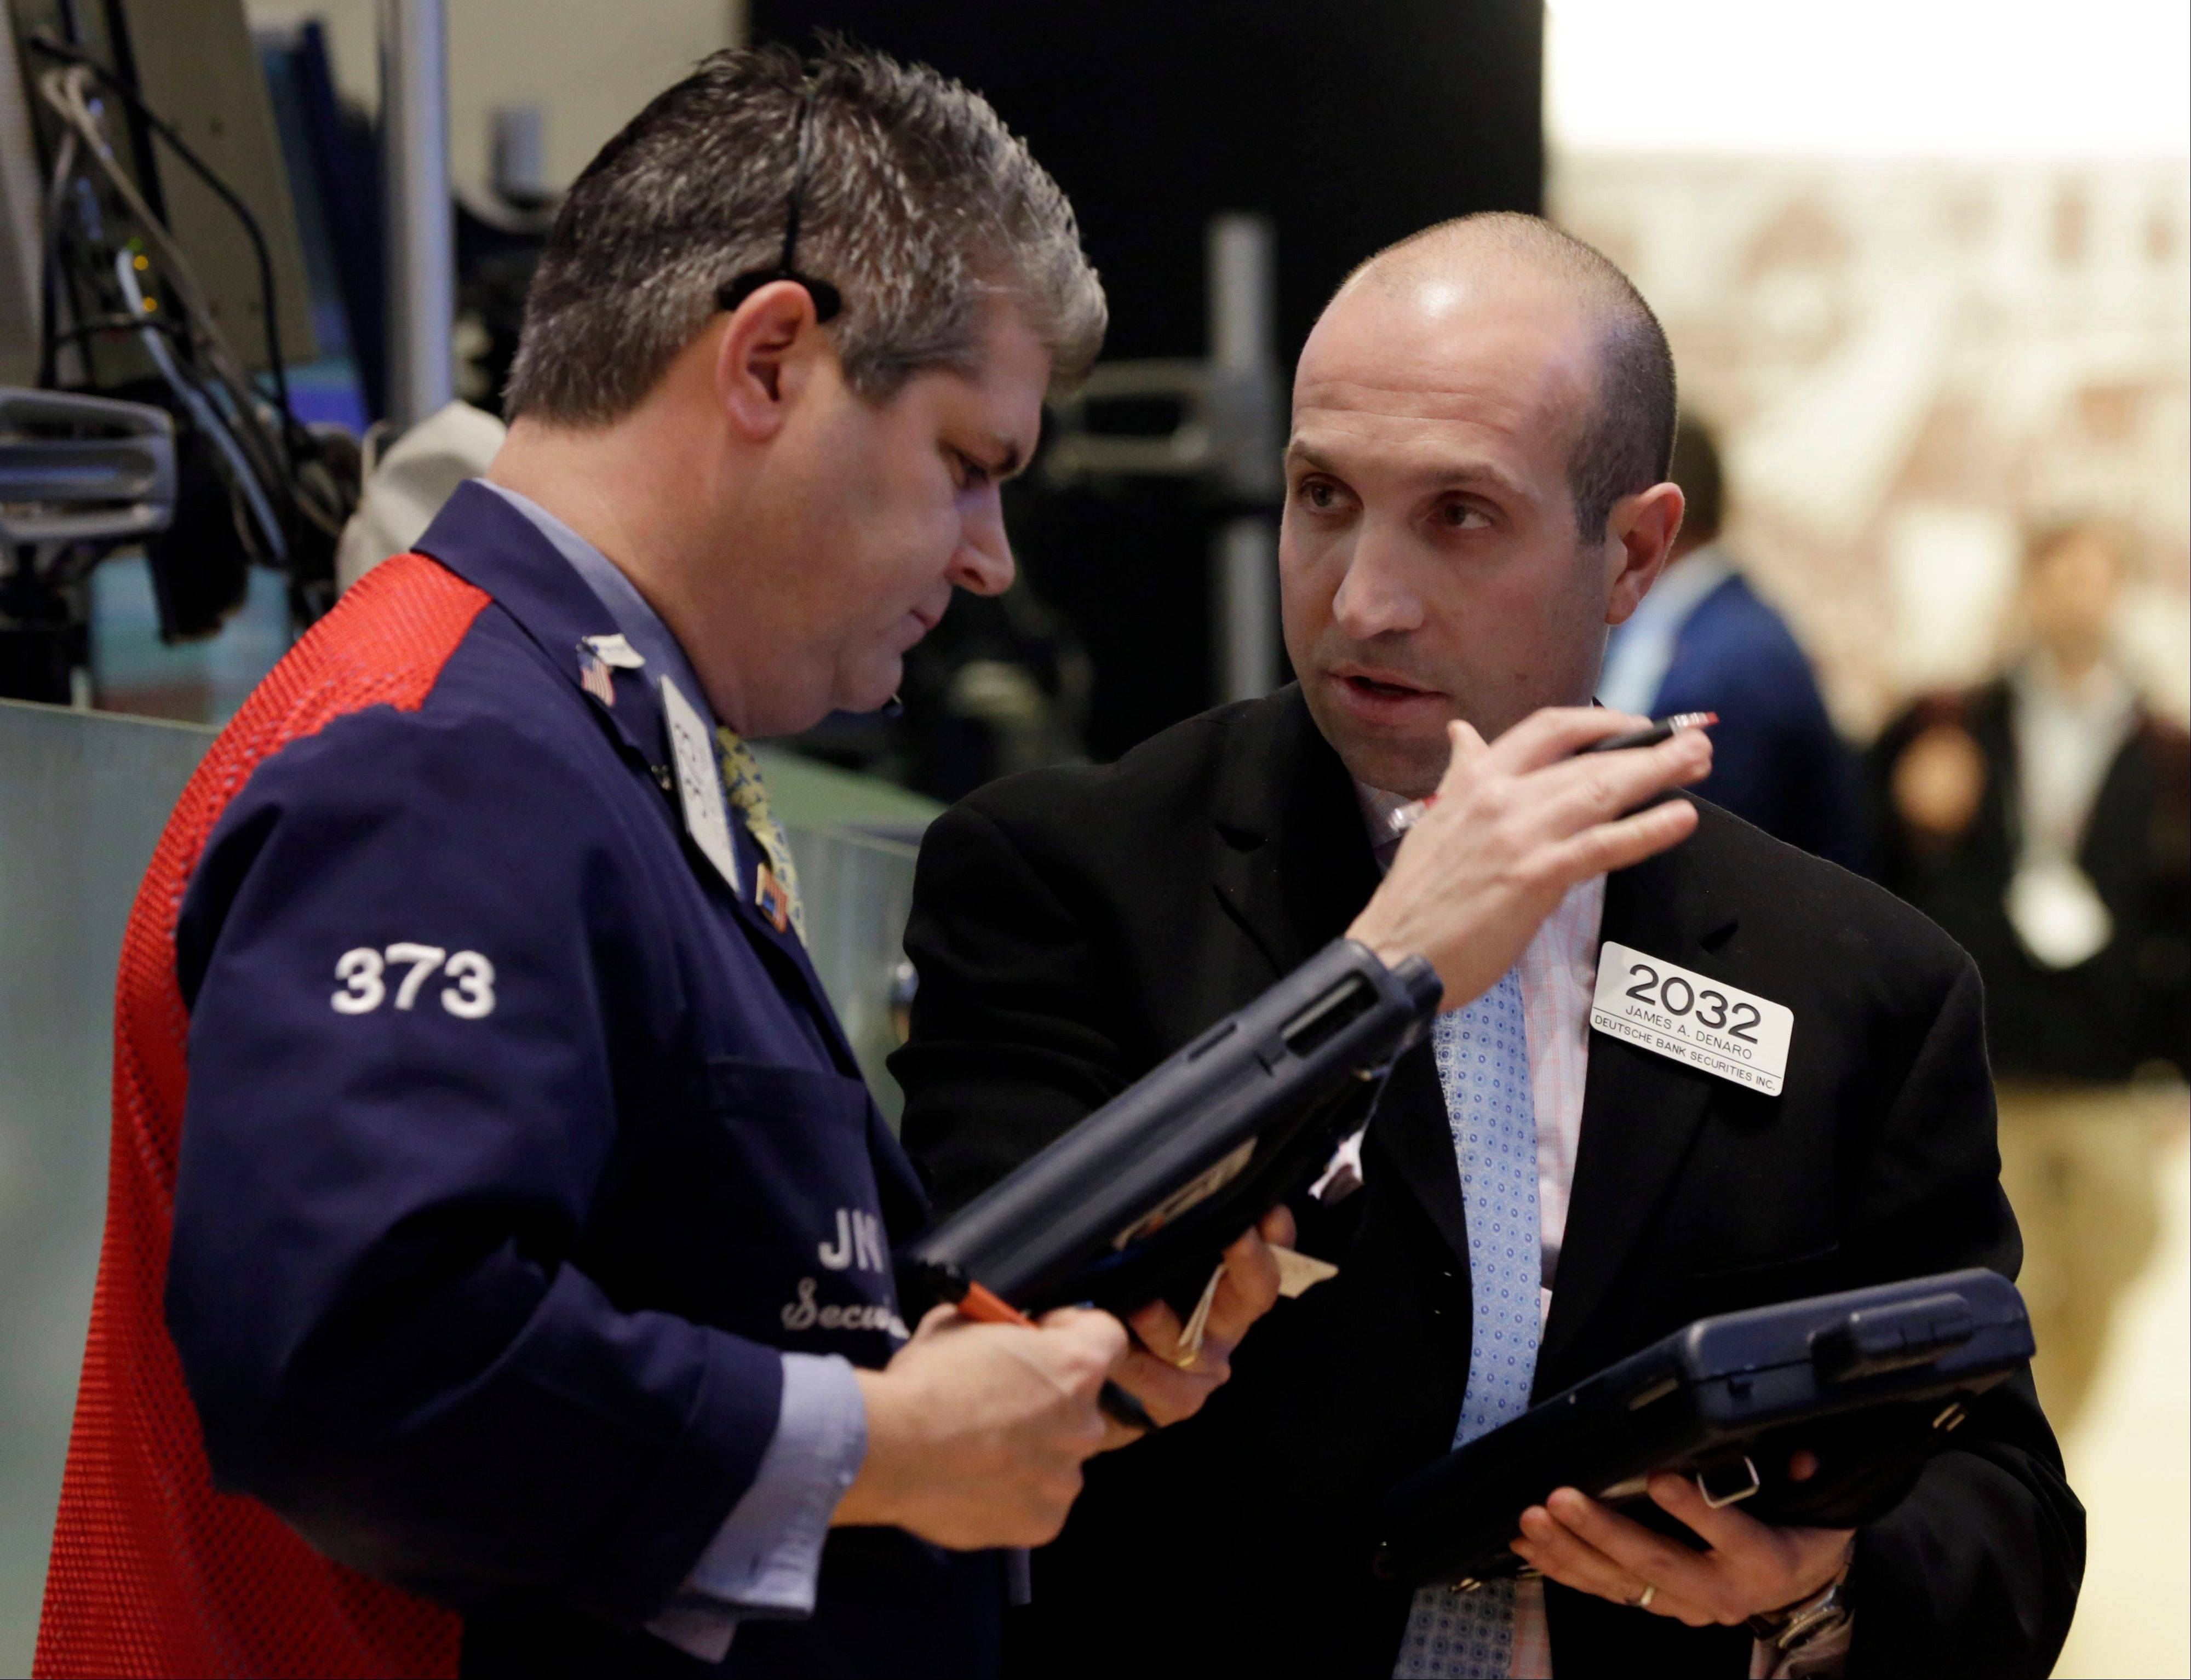 U.S. stocks fell, pulling the Standard & Poor's 500 Index lower after a record high, as a report showed American manufacturing expanded less than forecast in March as factories slowed production and orders waned.